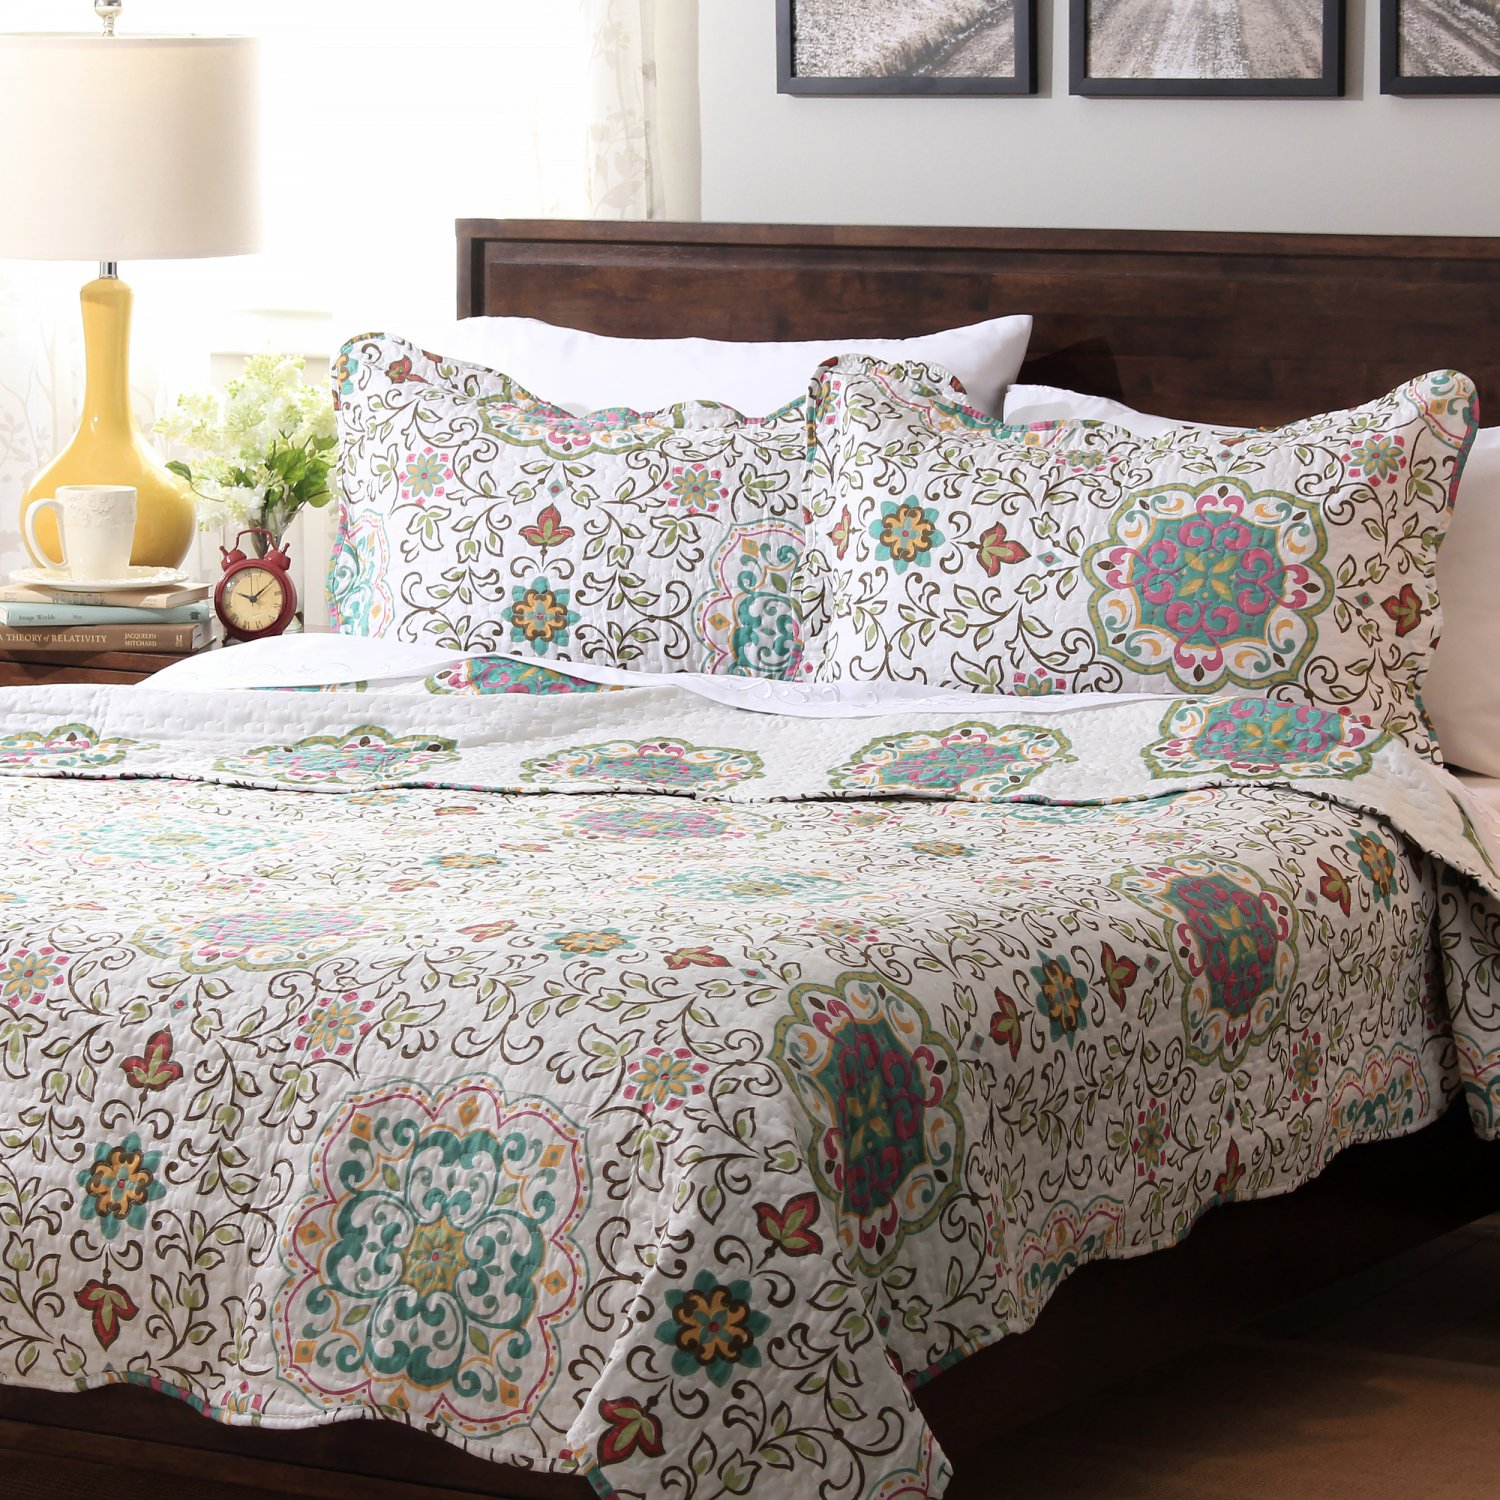 5 Pc Teal Blue Turquoise Paisley Queen Quilt Coverlet